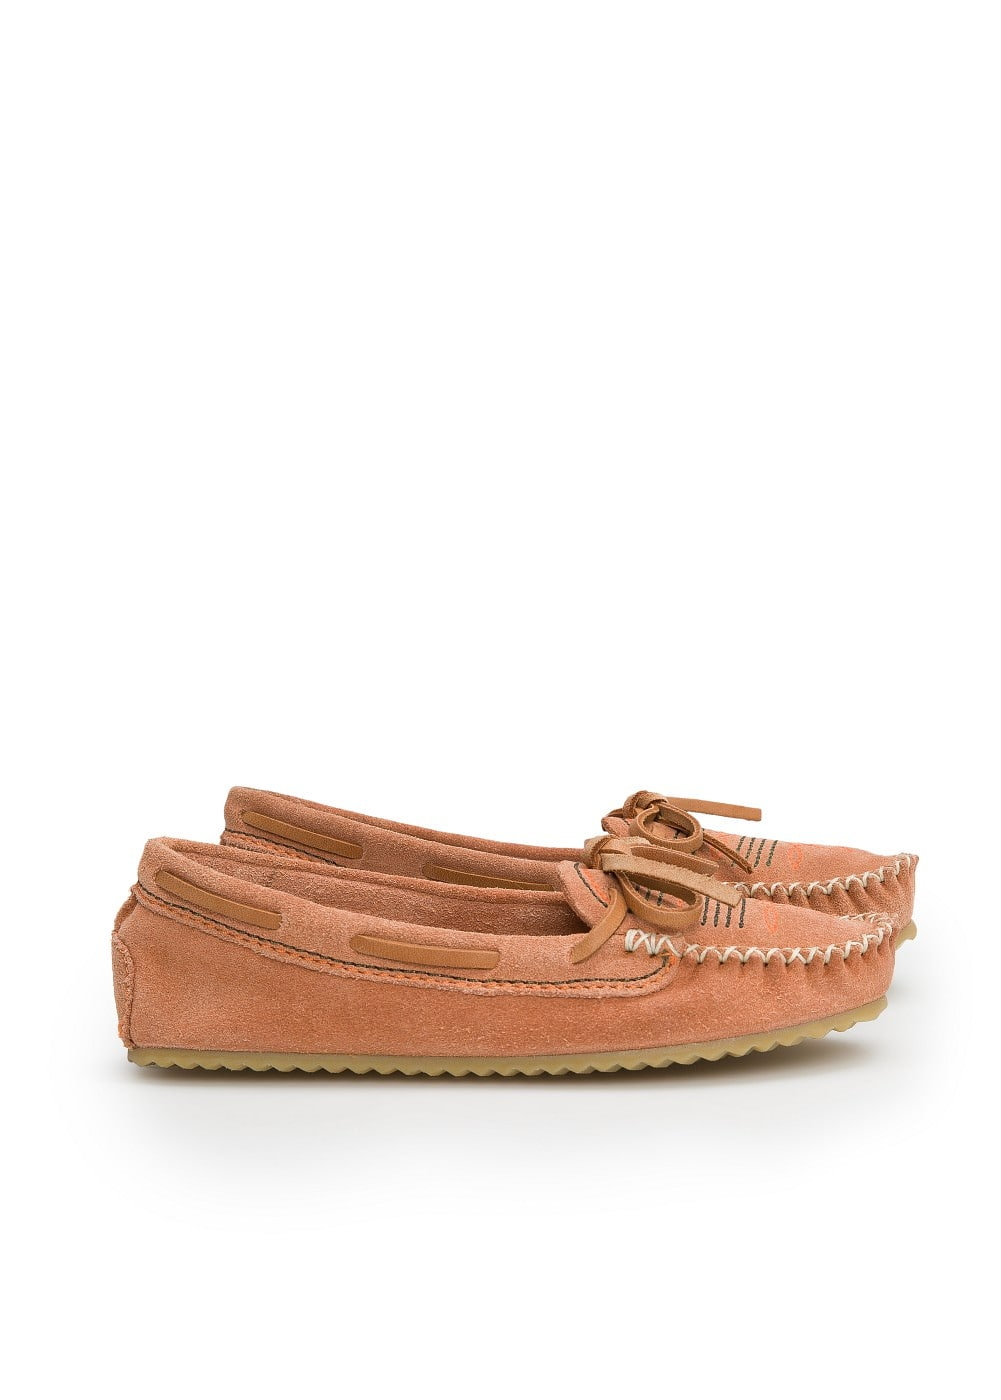 Embroidered suede moccasins